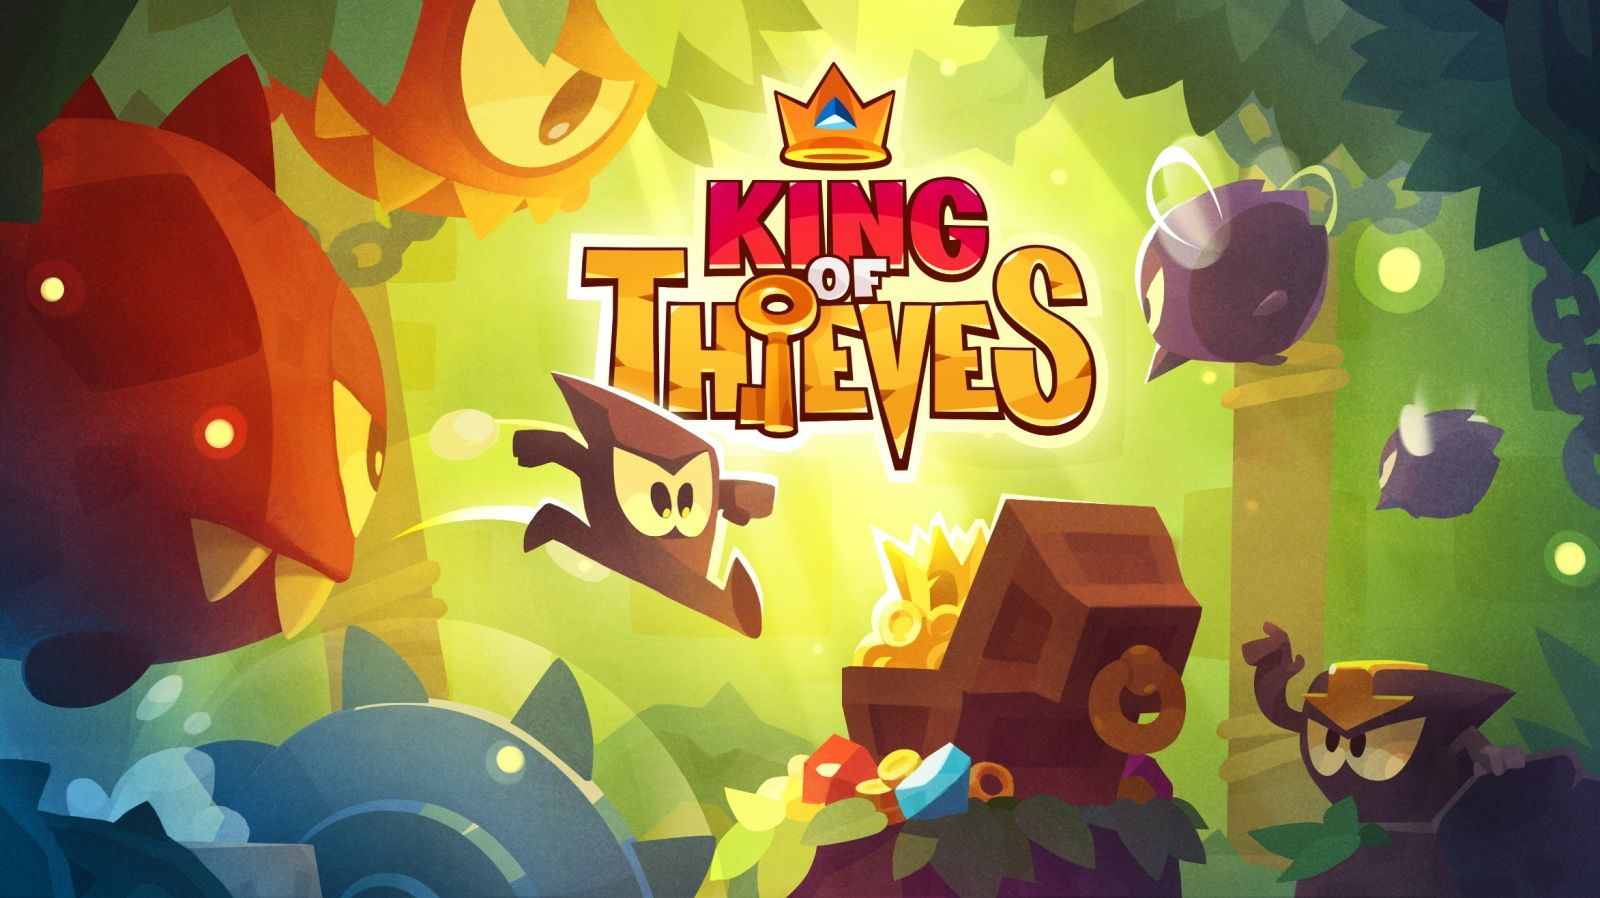 продакт менеджер King of Thieves